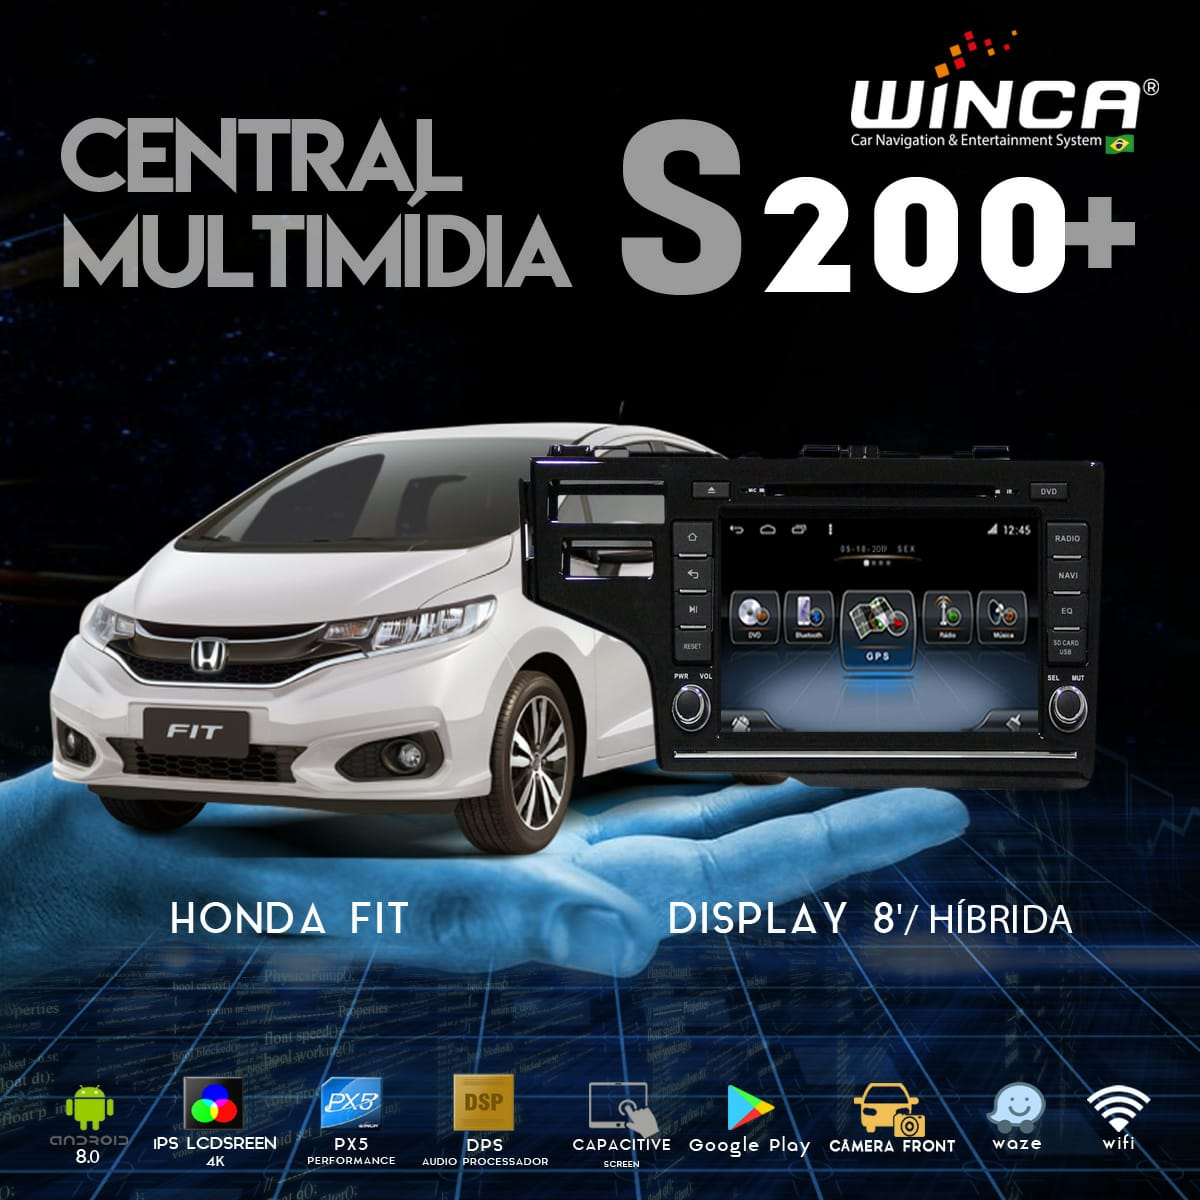 Central Multimidia Honda WRV / FIT 2015 a 2020  - Winca Tela 8 polegas  - Waze Spotify youtube - 2 cameras Ré + Frontal - TV  Digital - GPS Integrado -  Bluetooth - 2 entradas USB - Android 9.0